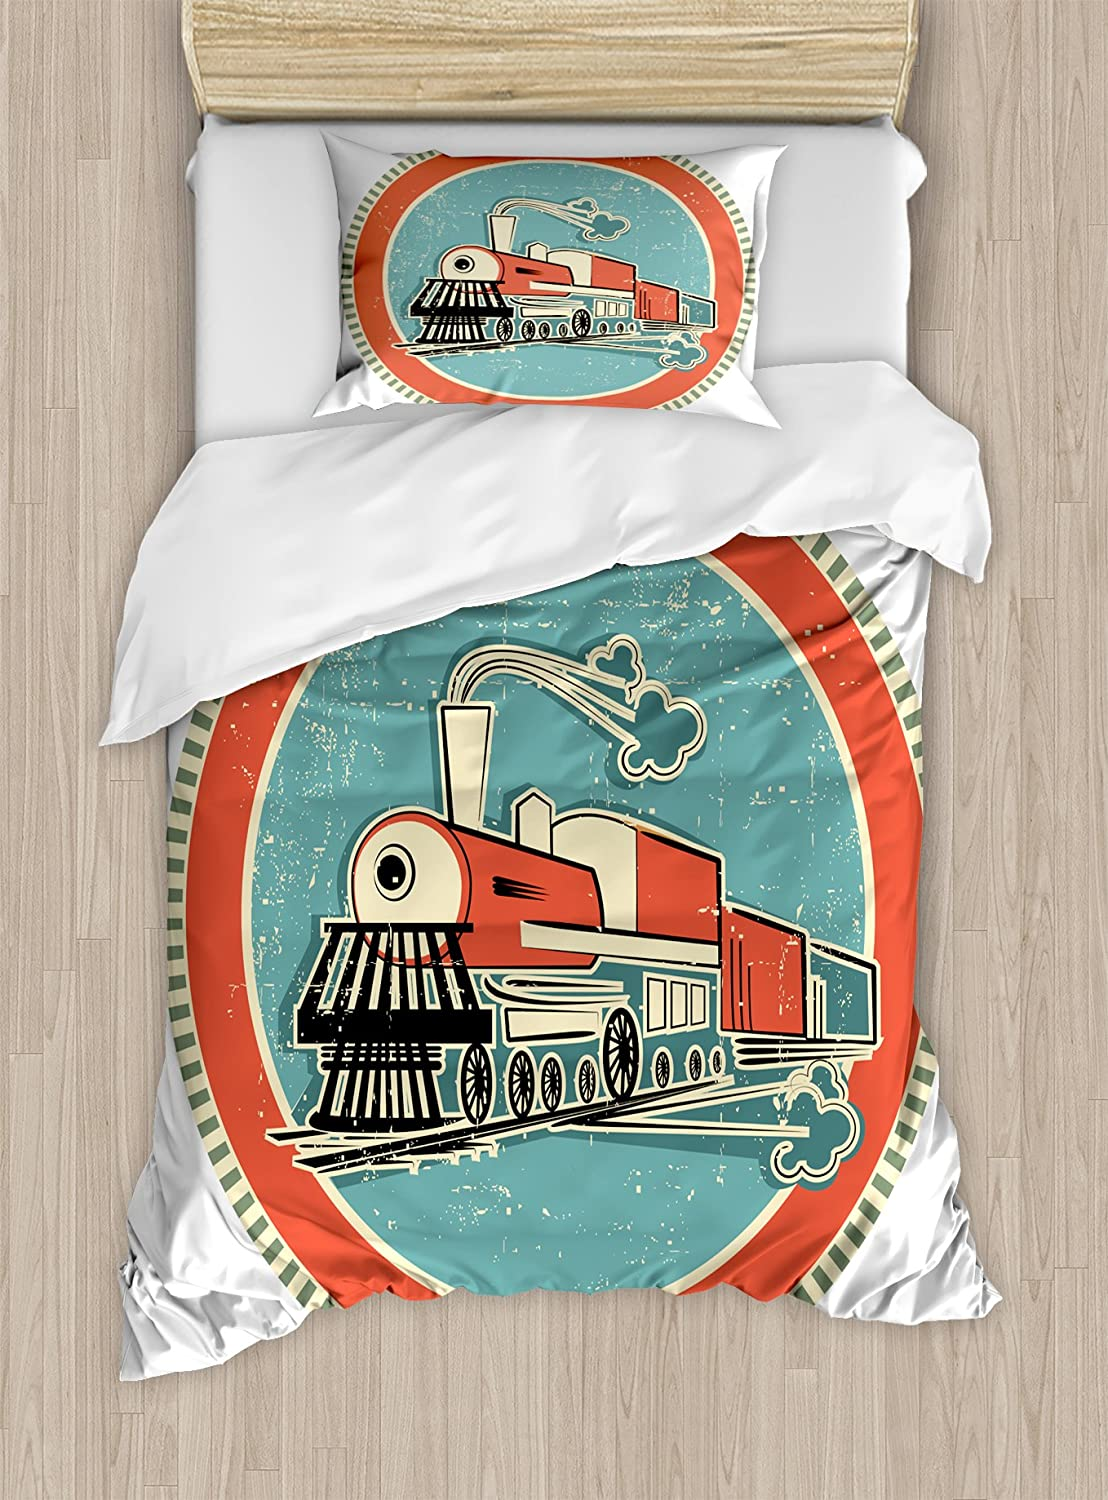 Ambesonne Steam Engine Duvet Cover Set, Vintage Style Orange and Blue Banner Train Transportation Retro, Decorative 2 Piece Bedding Set with 1 Pillow Sham, Twin Size, Turquoise Salmon